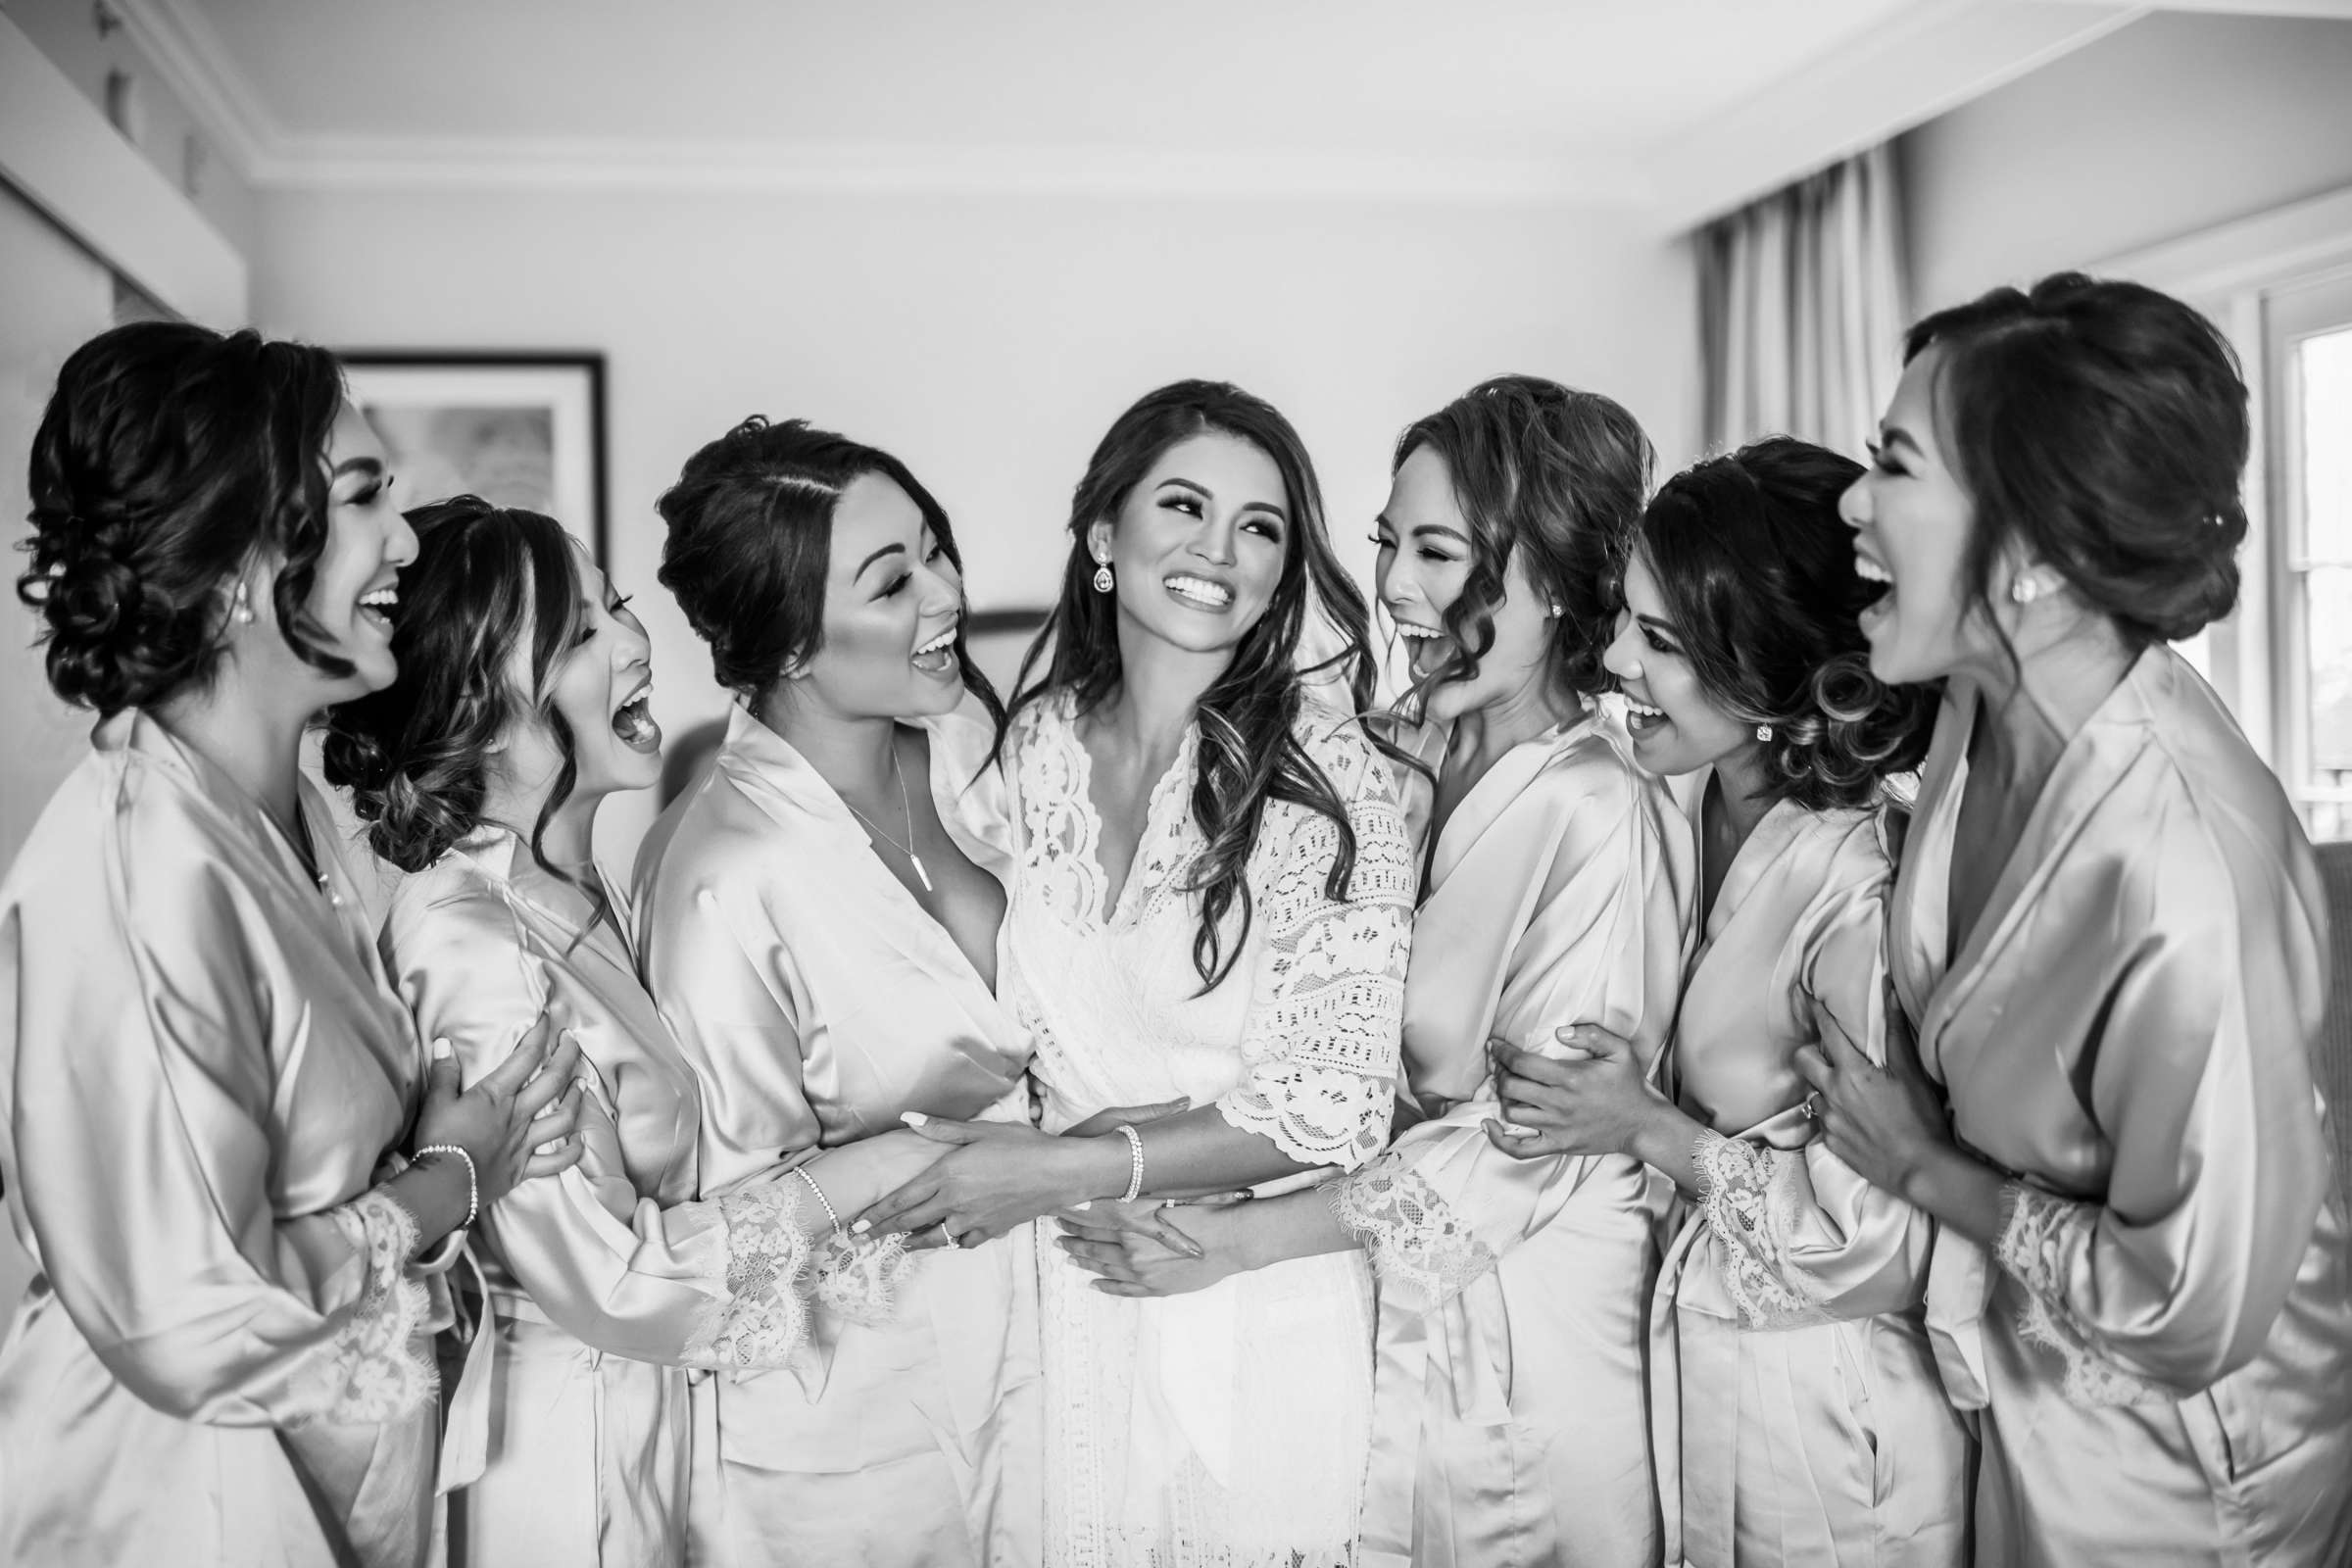 Scripps Seaside Forum Wedding coordinated by Lavish Weddings, Cindy and Justin Wedding Photo #381790 by True Photography